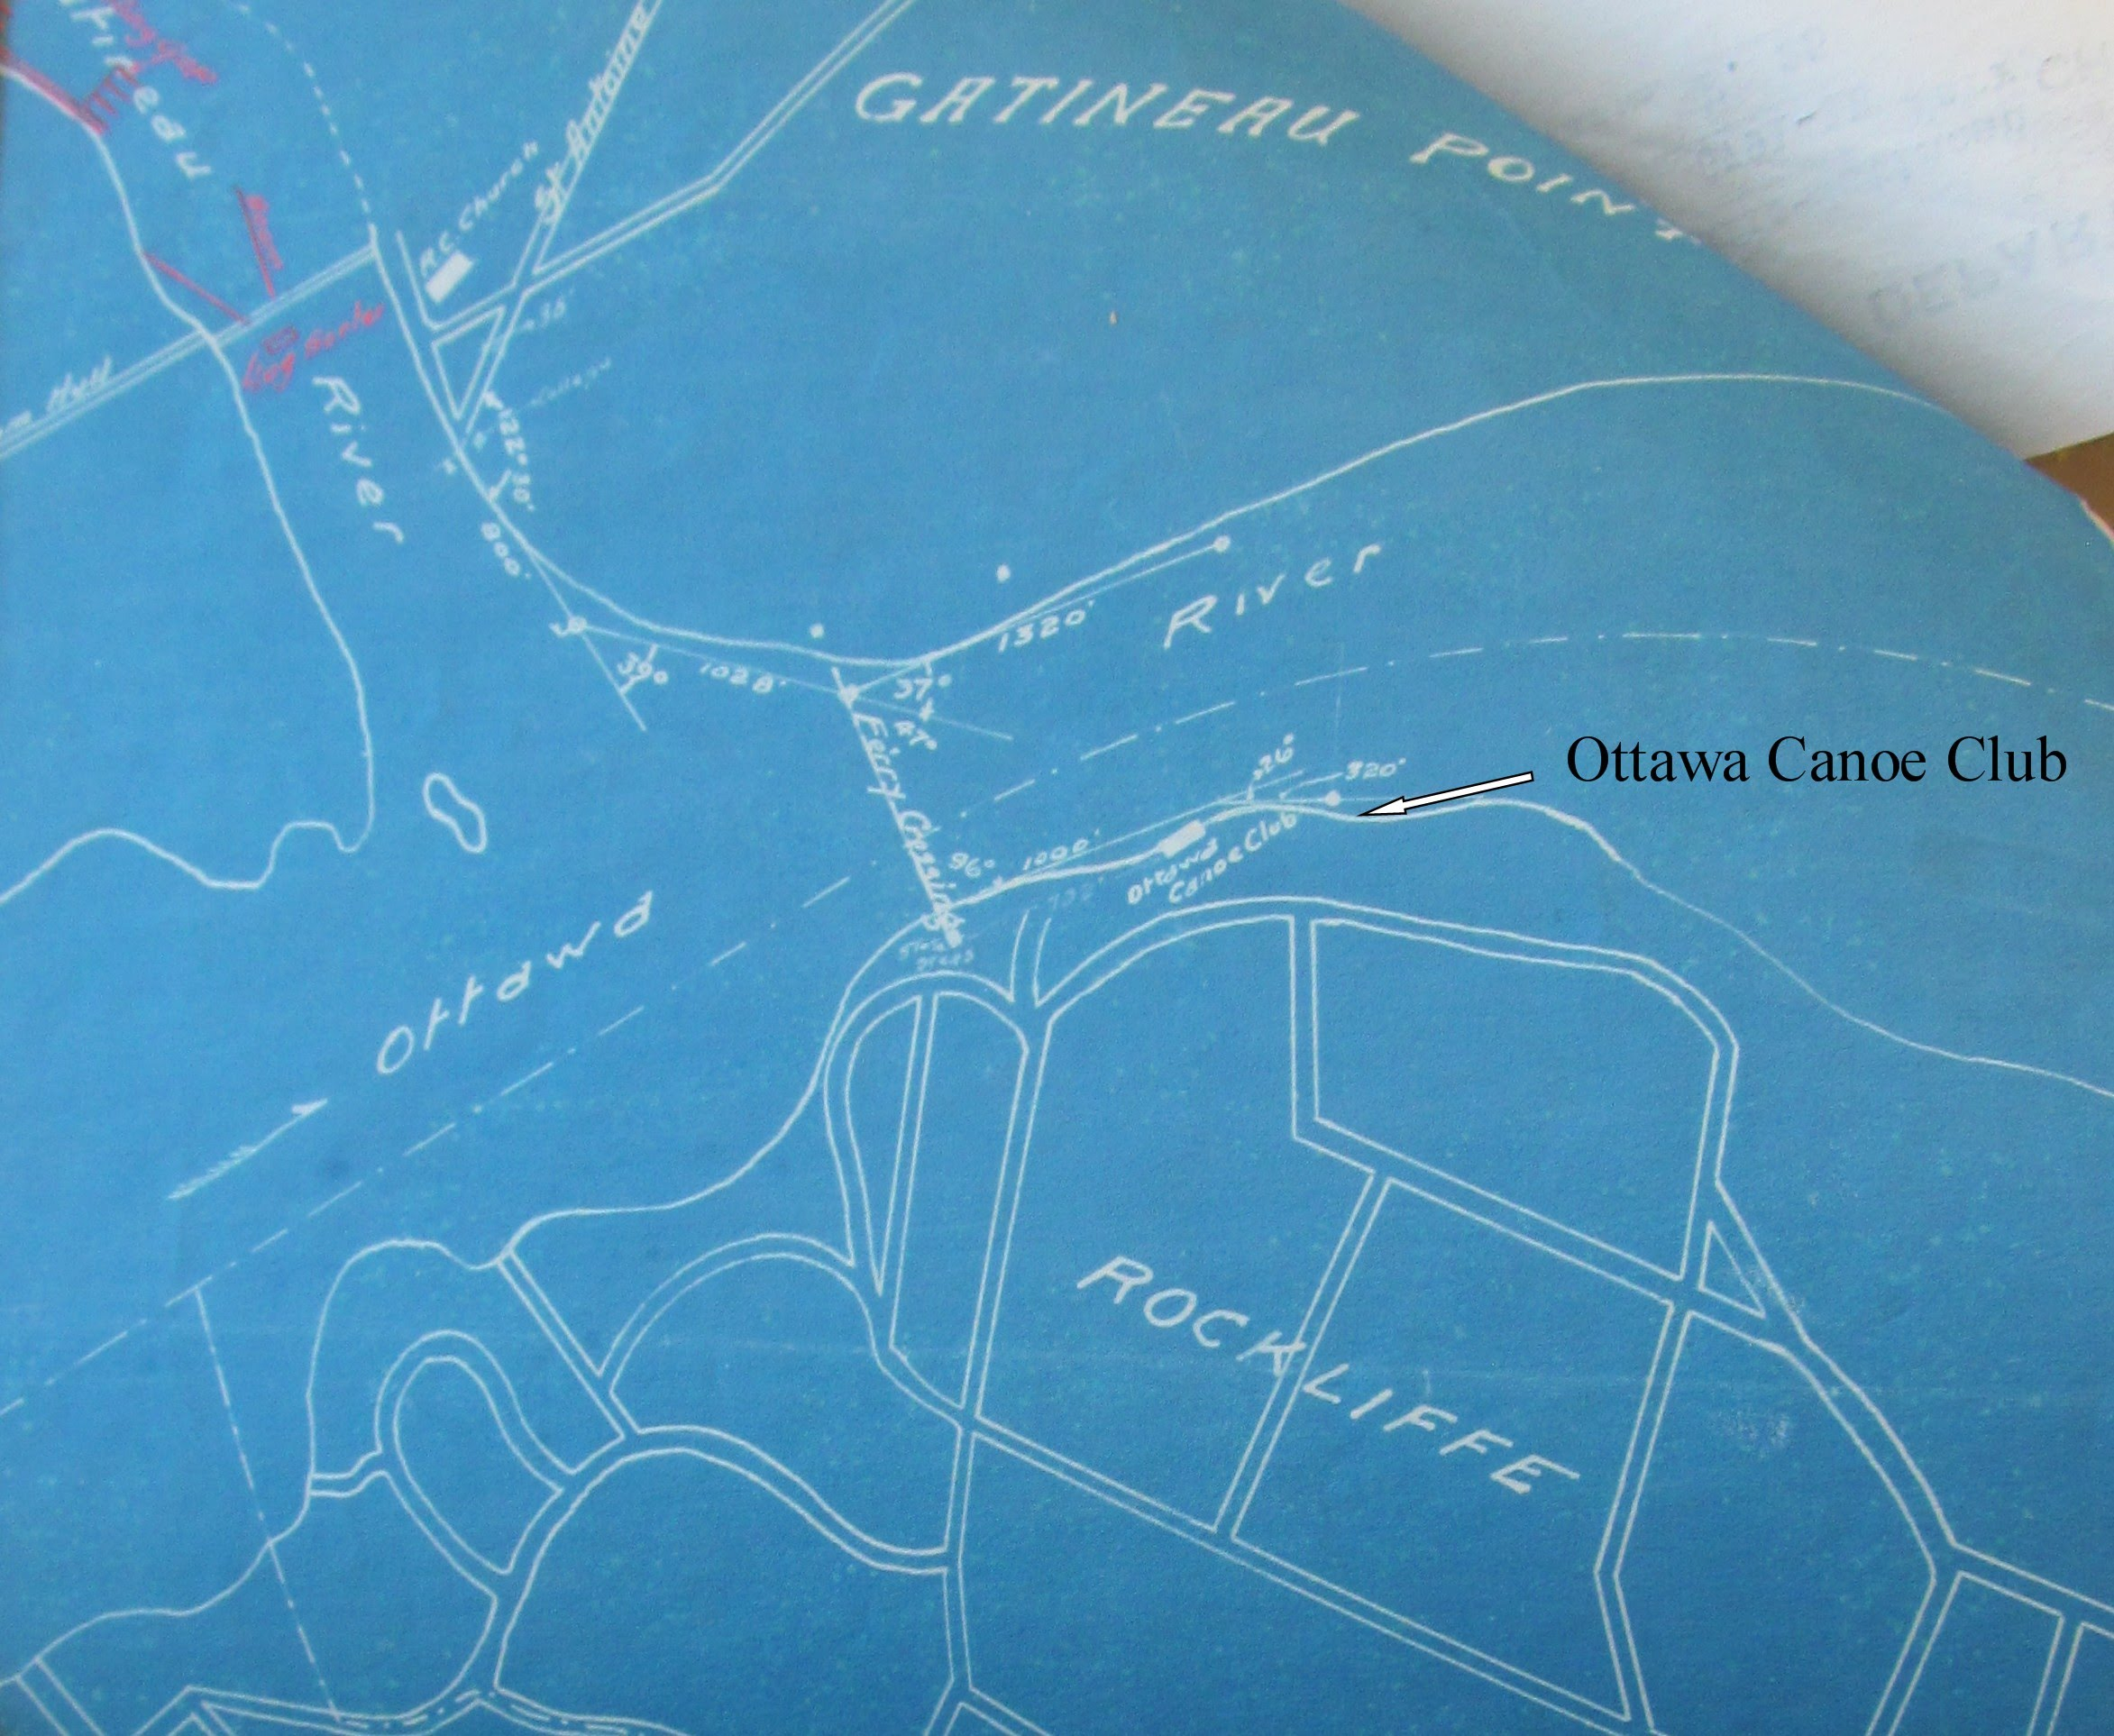 Plan, 1915, showing location of Gatineau Ferry and OCC. LAC, DPW File 8791-1, Vol.3